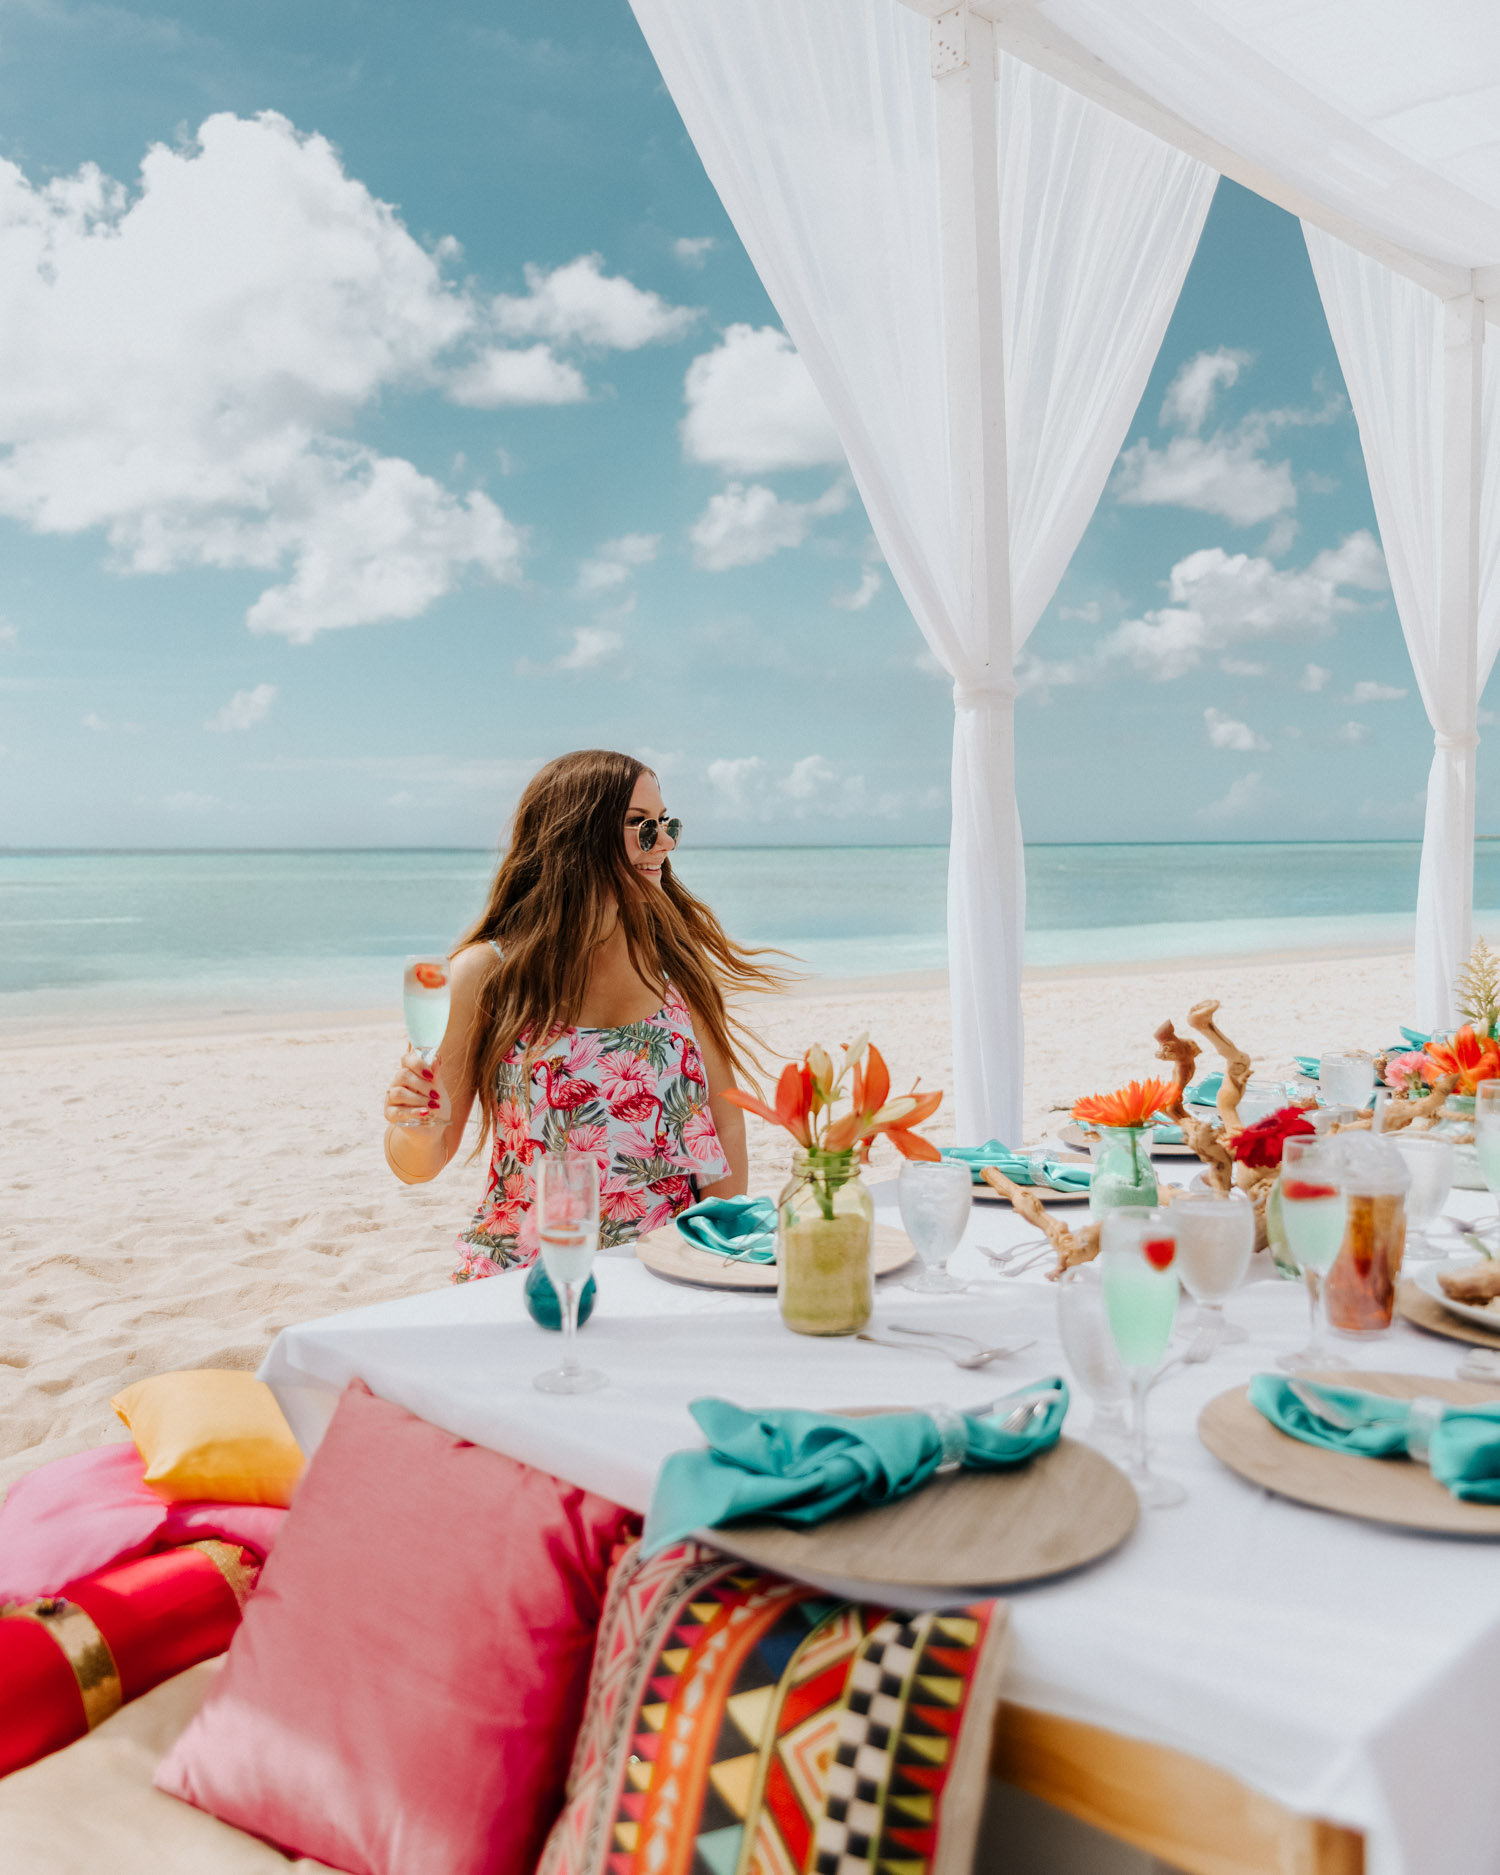 The Ultimate Aruba Travel Guide | Lunch on the Beach